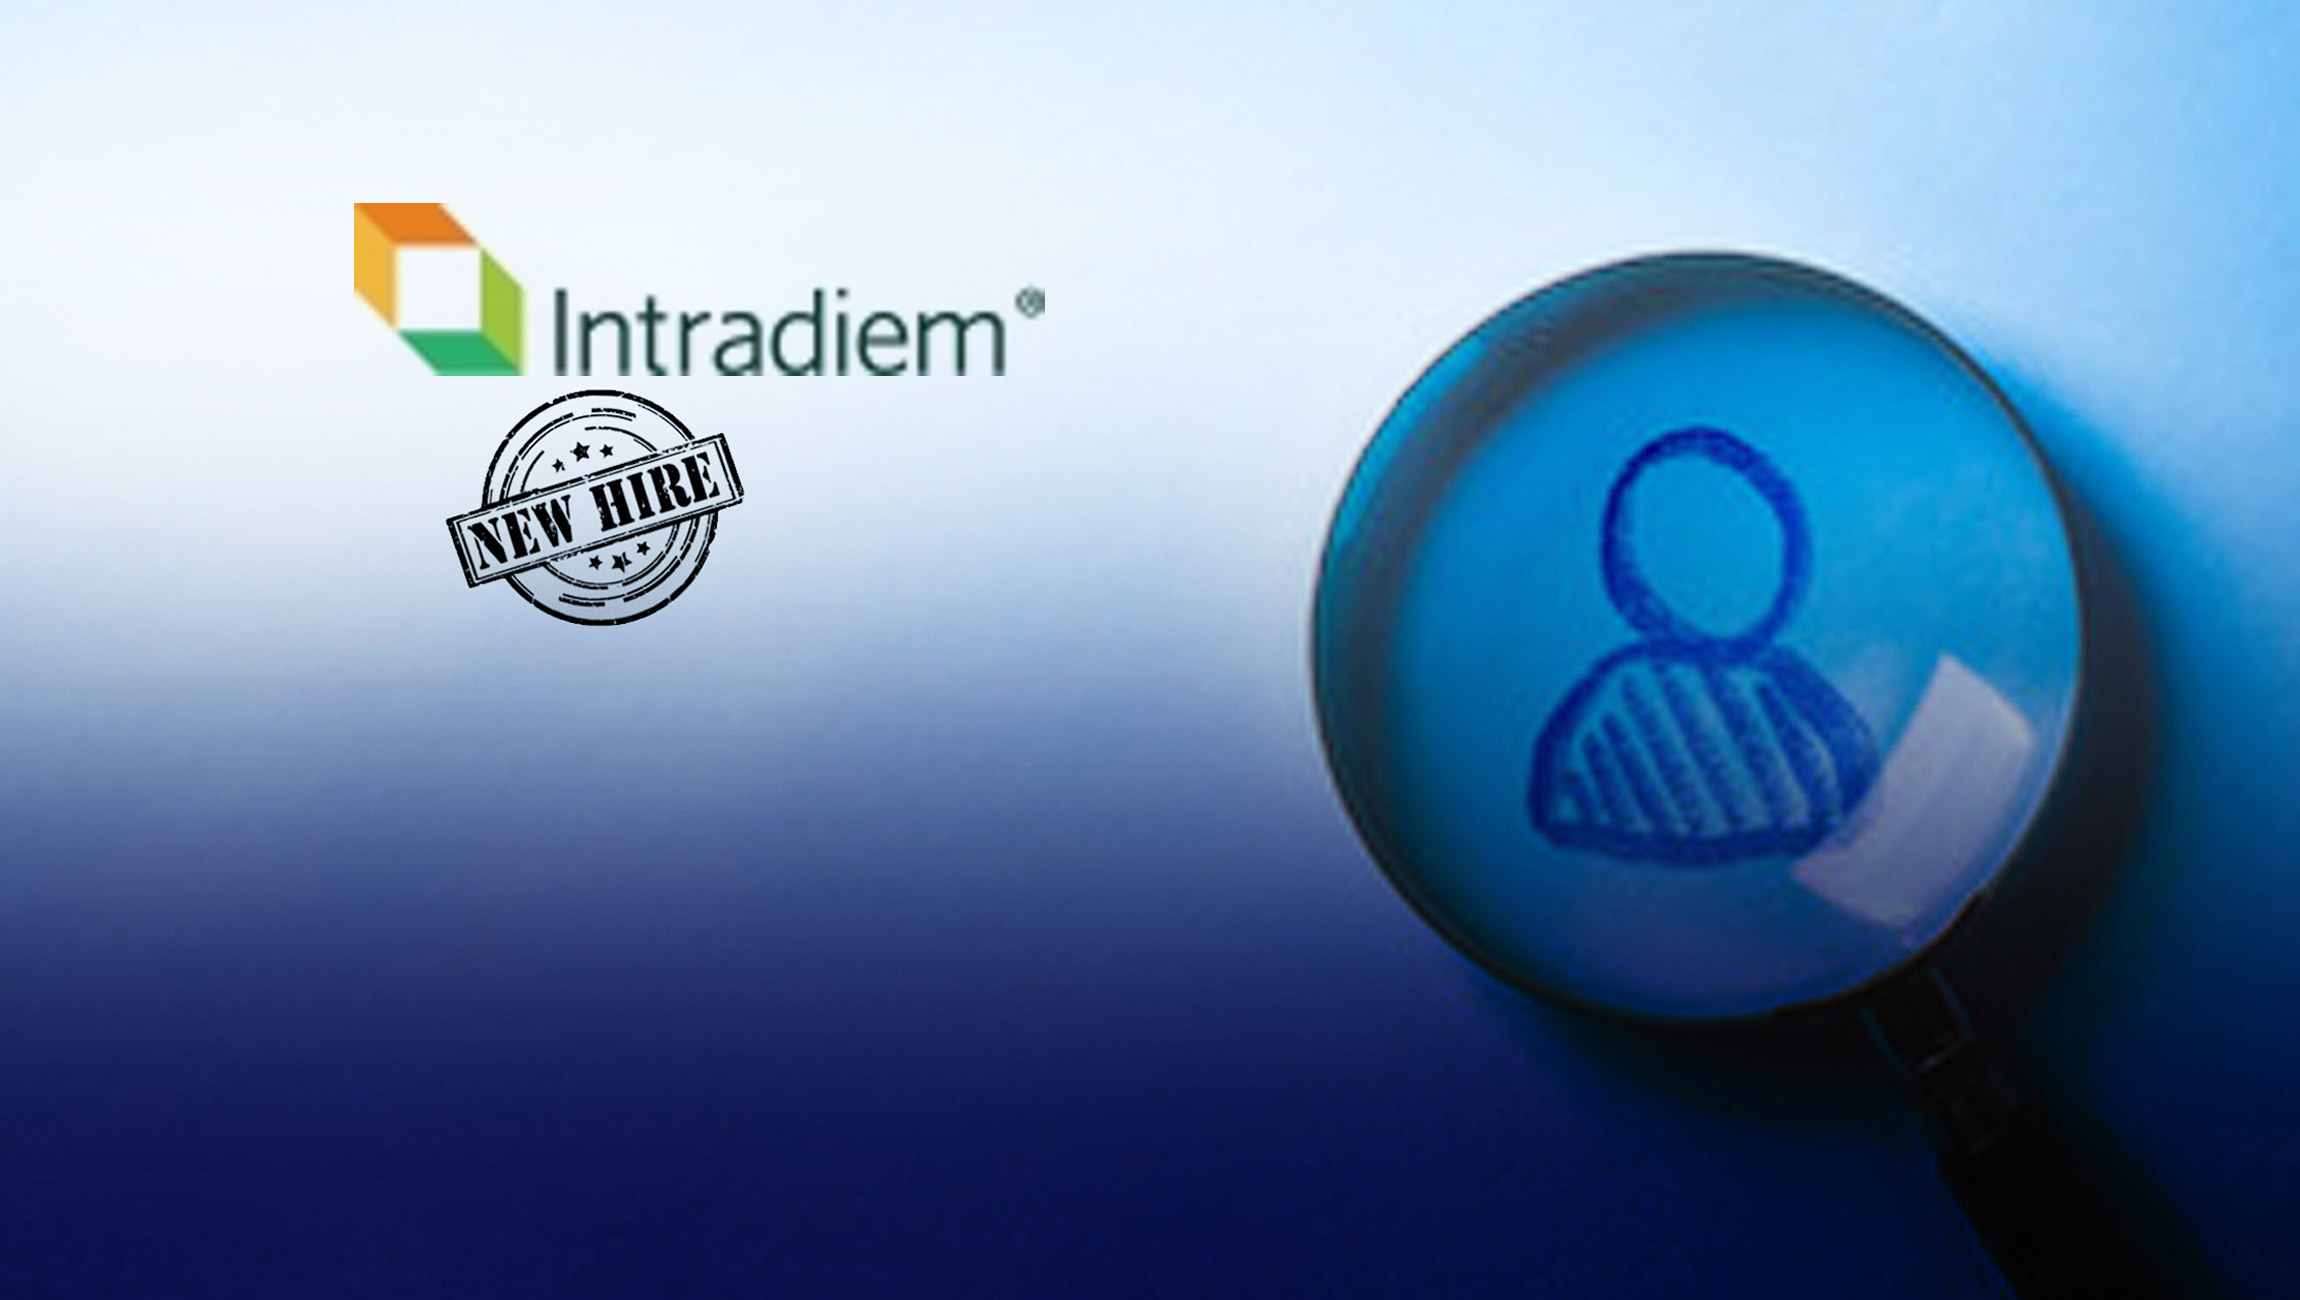 Kimberly Hiler Joins Intradiem as Chief People Officer